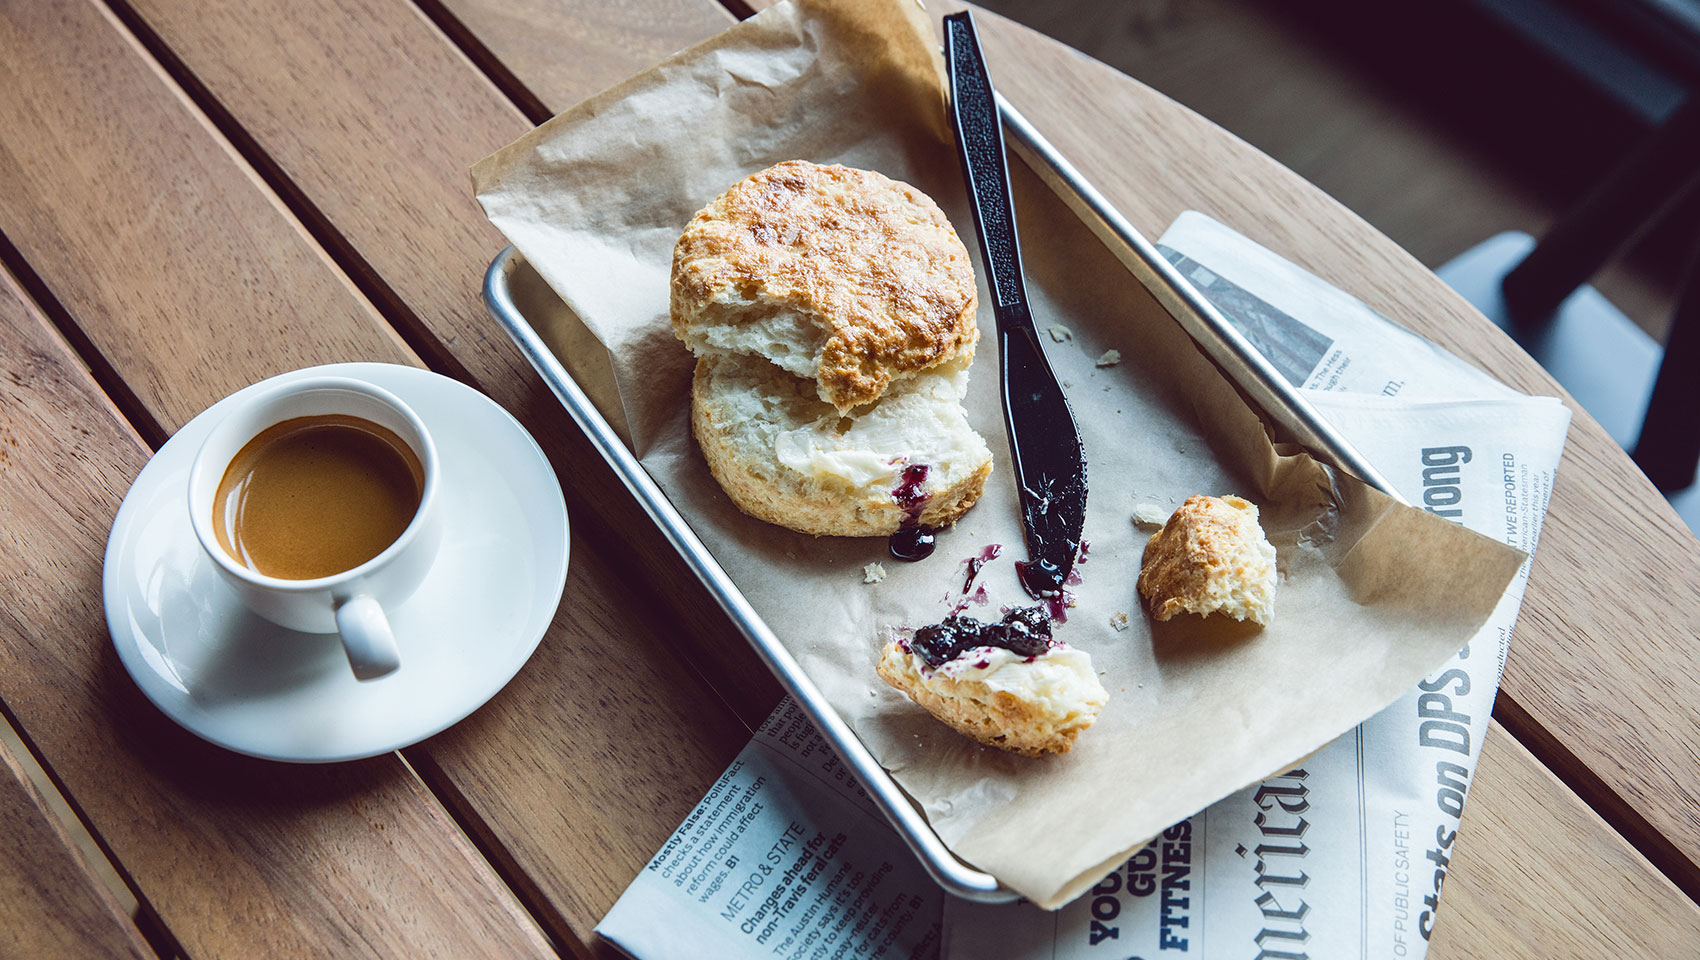 a pastry muffin with coffee on a wooden table